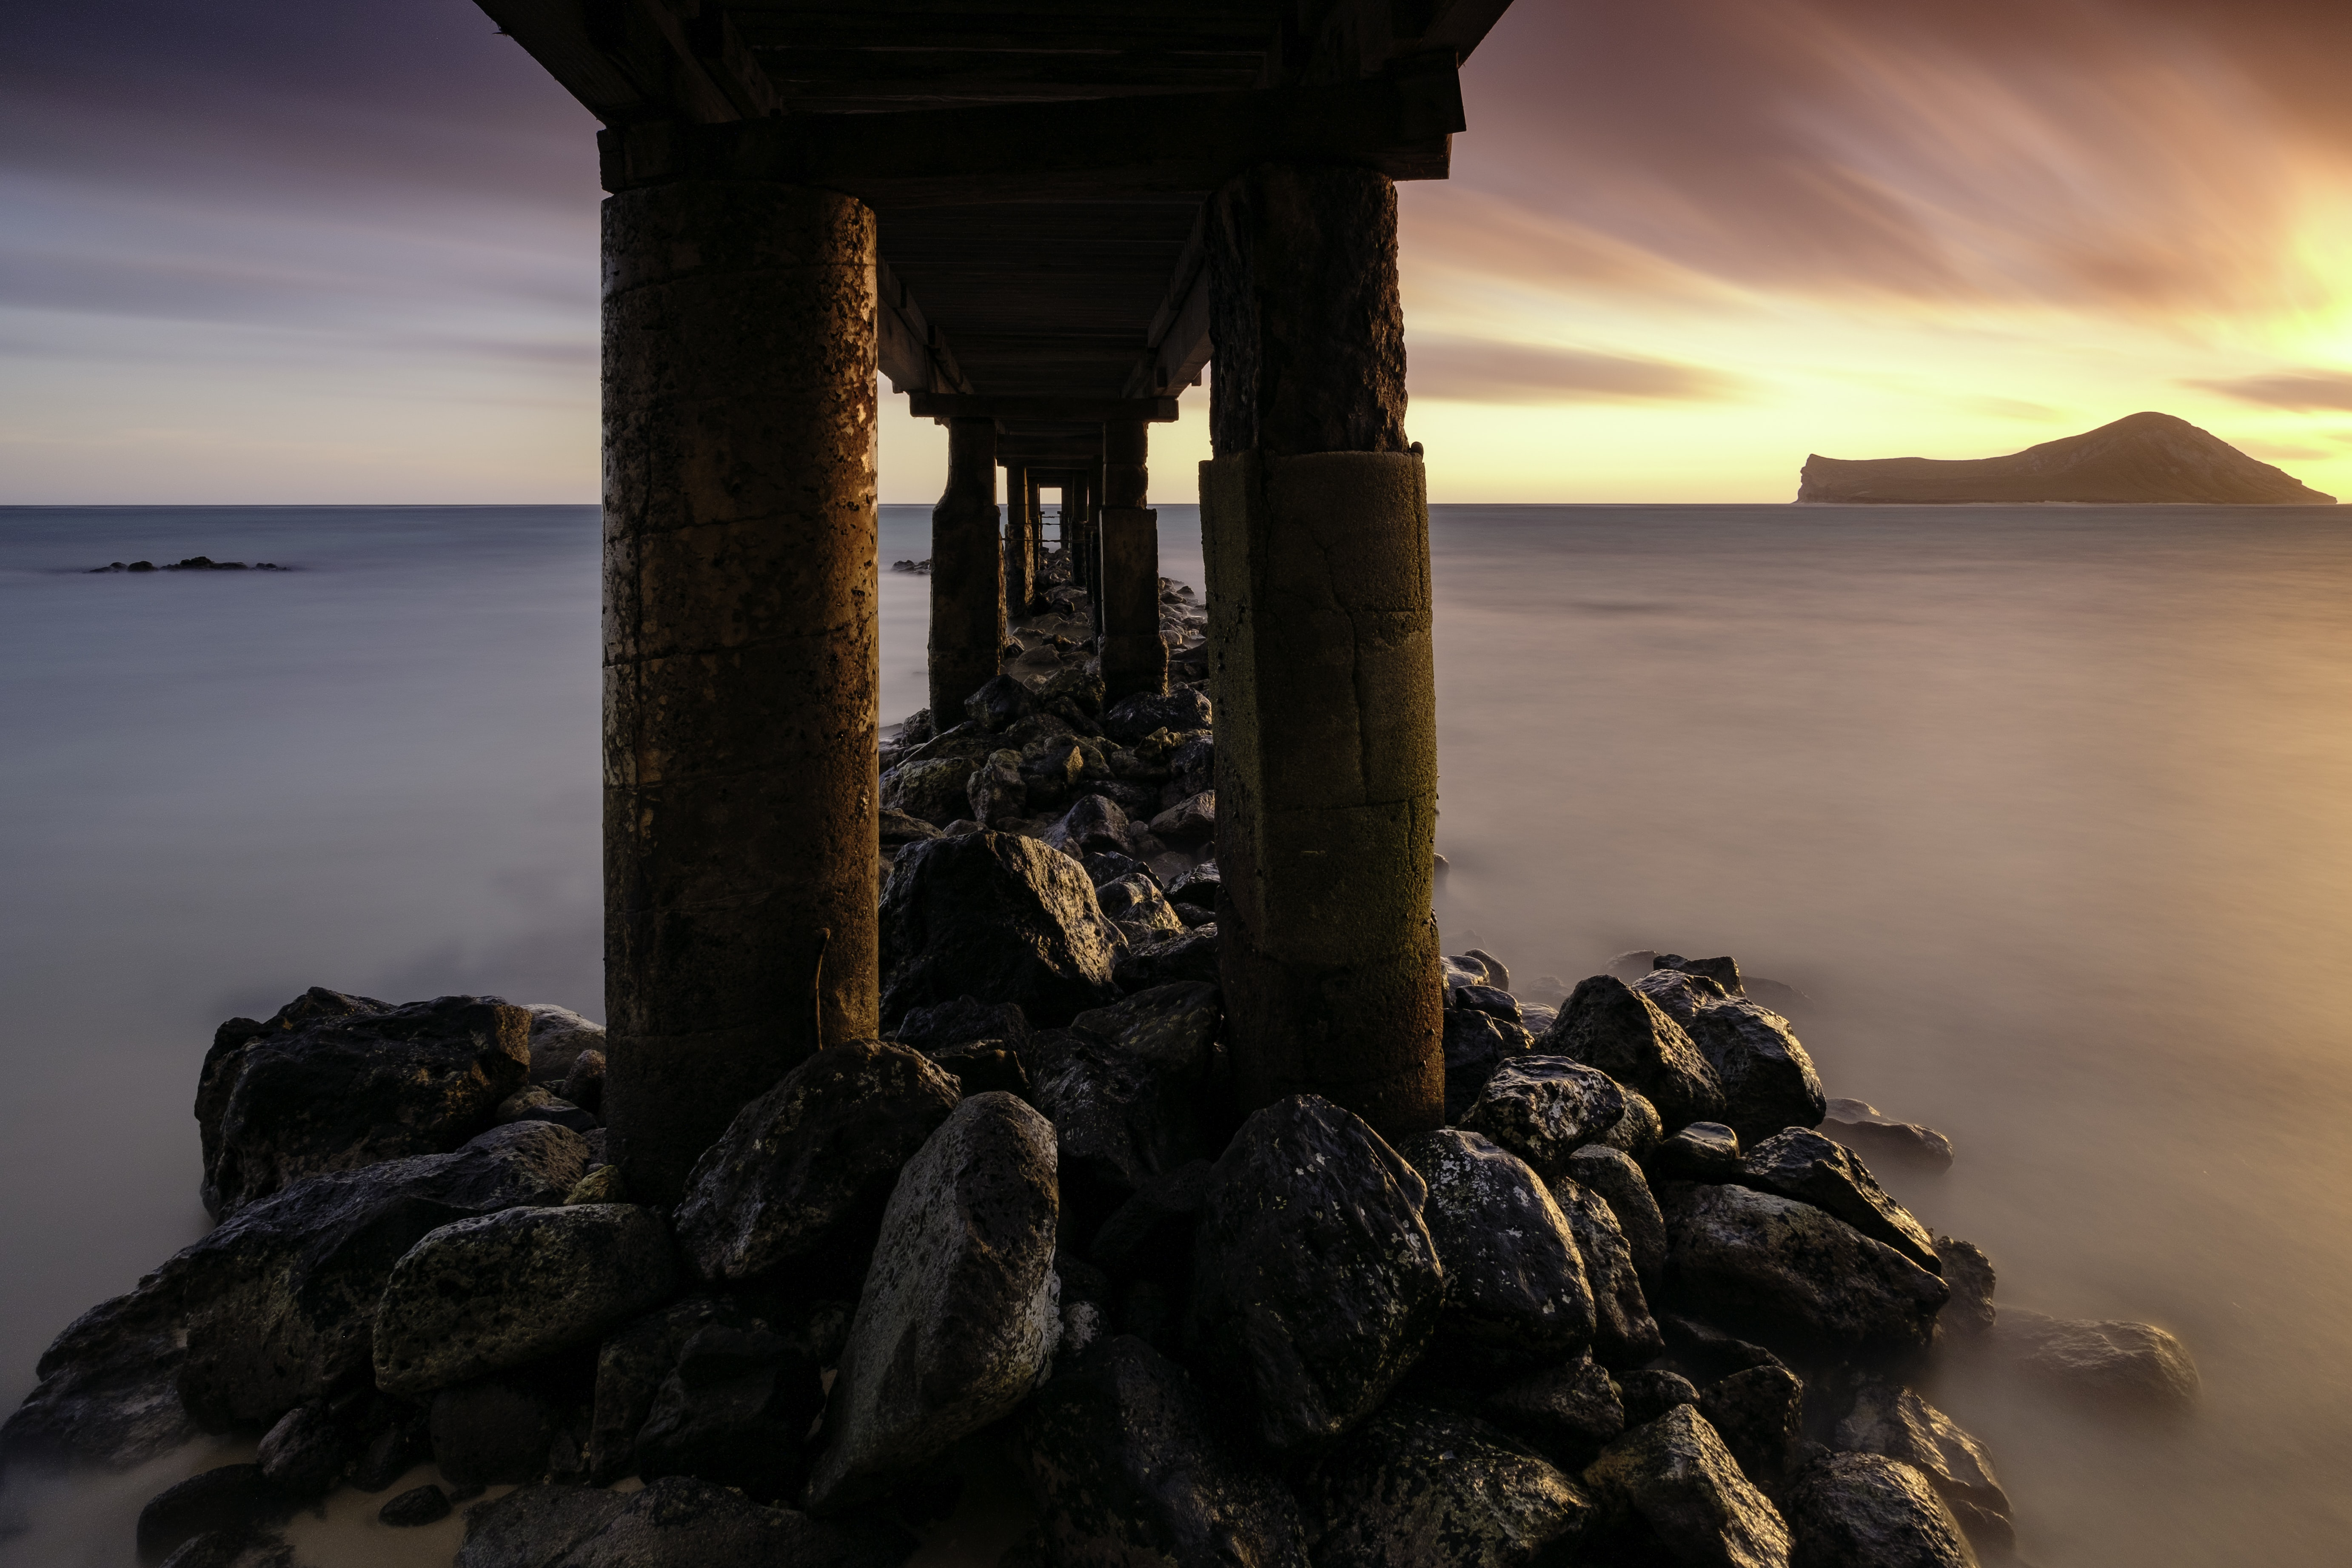 An underneath view of a bridge and rocks over the sea with the sunset in the background